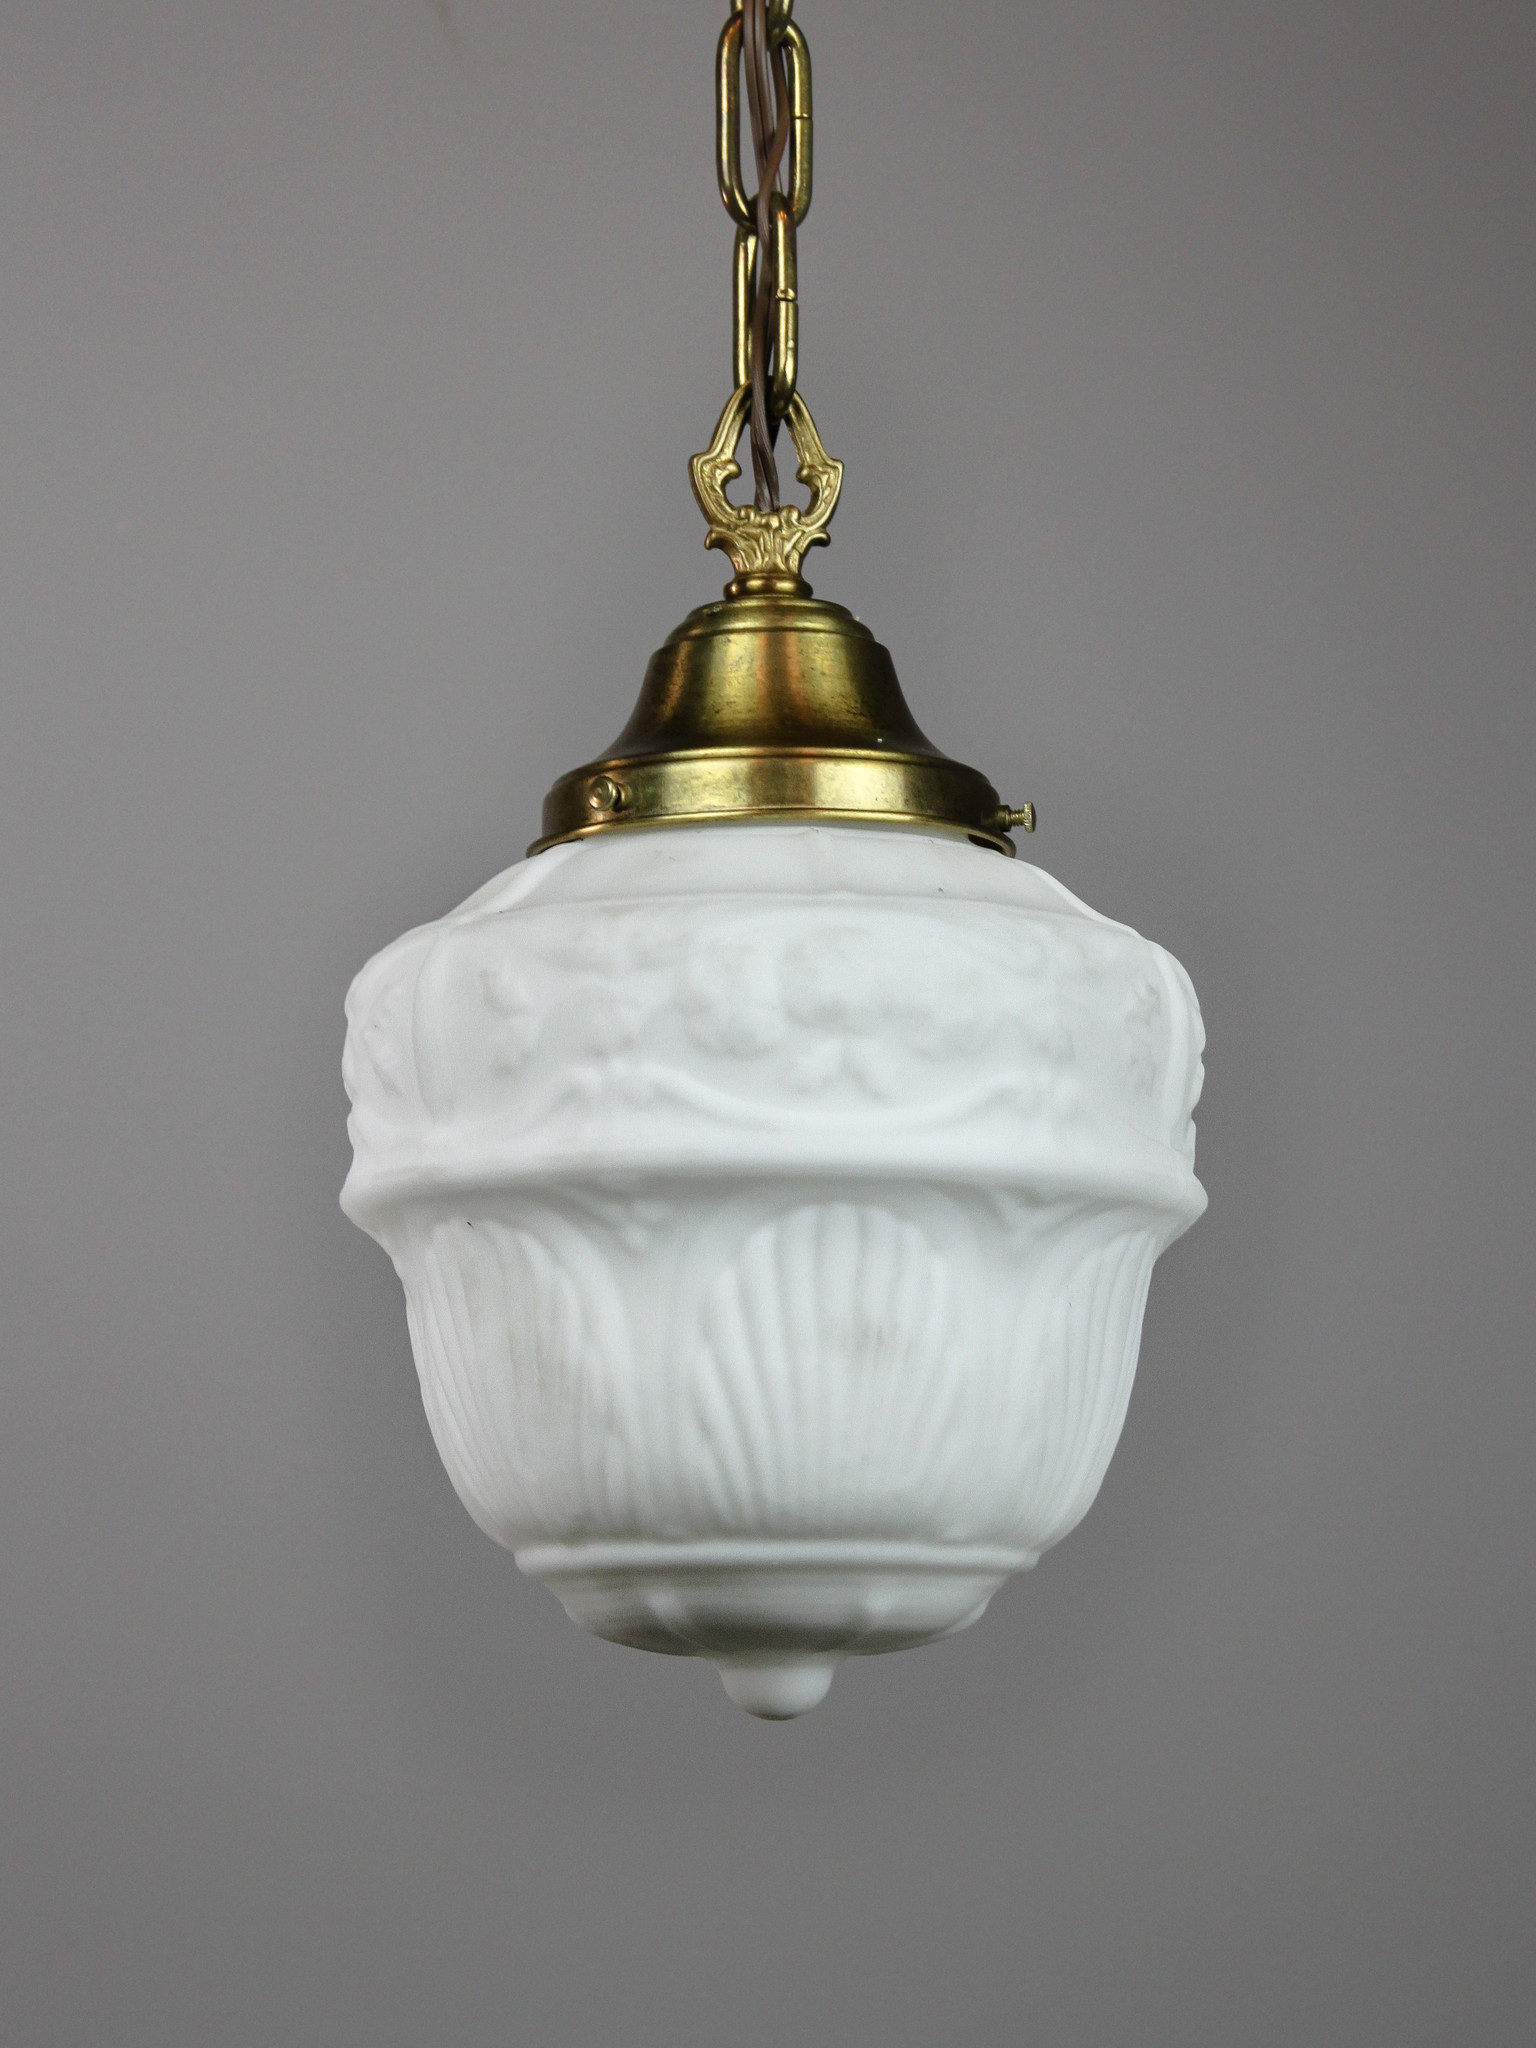 Acorn Pendant Light Fixture